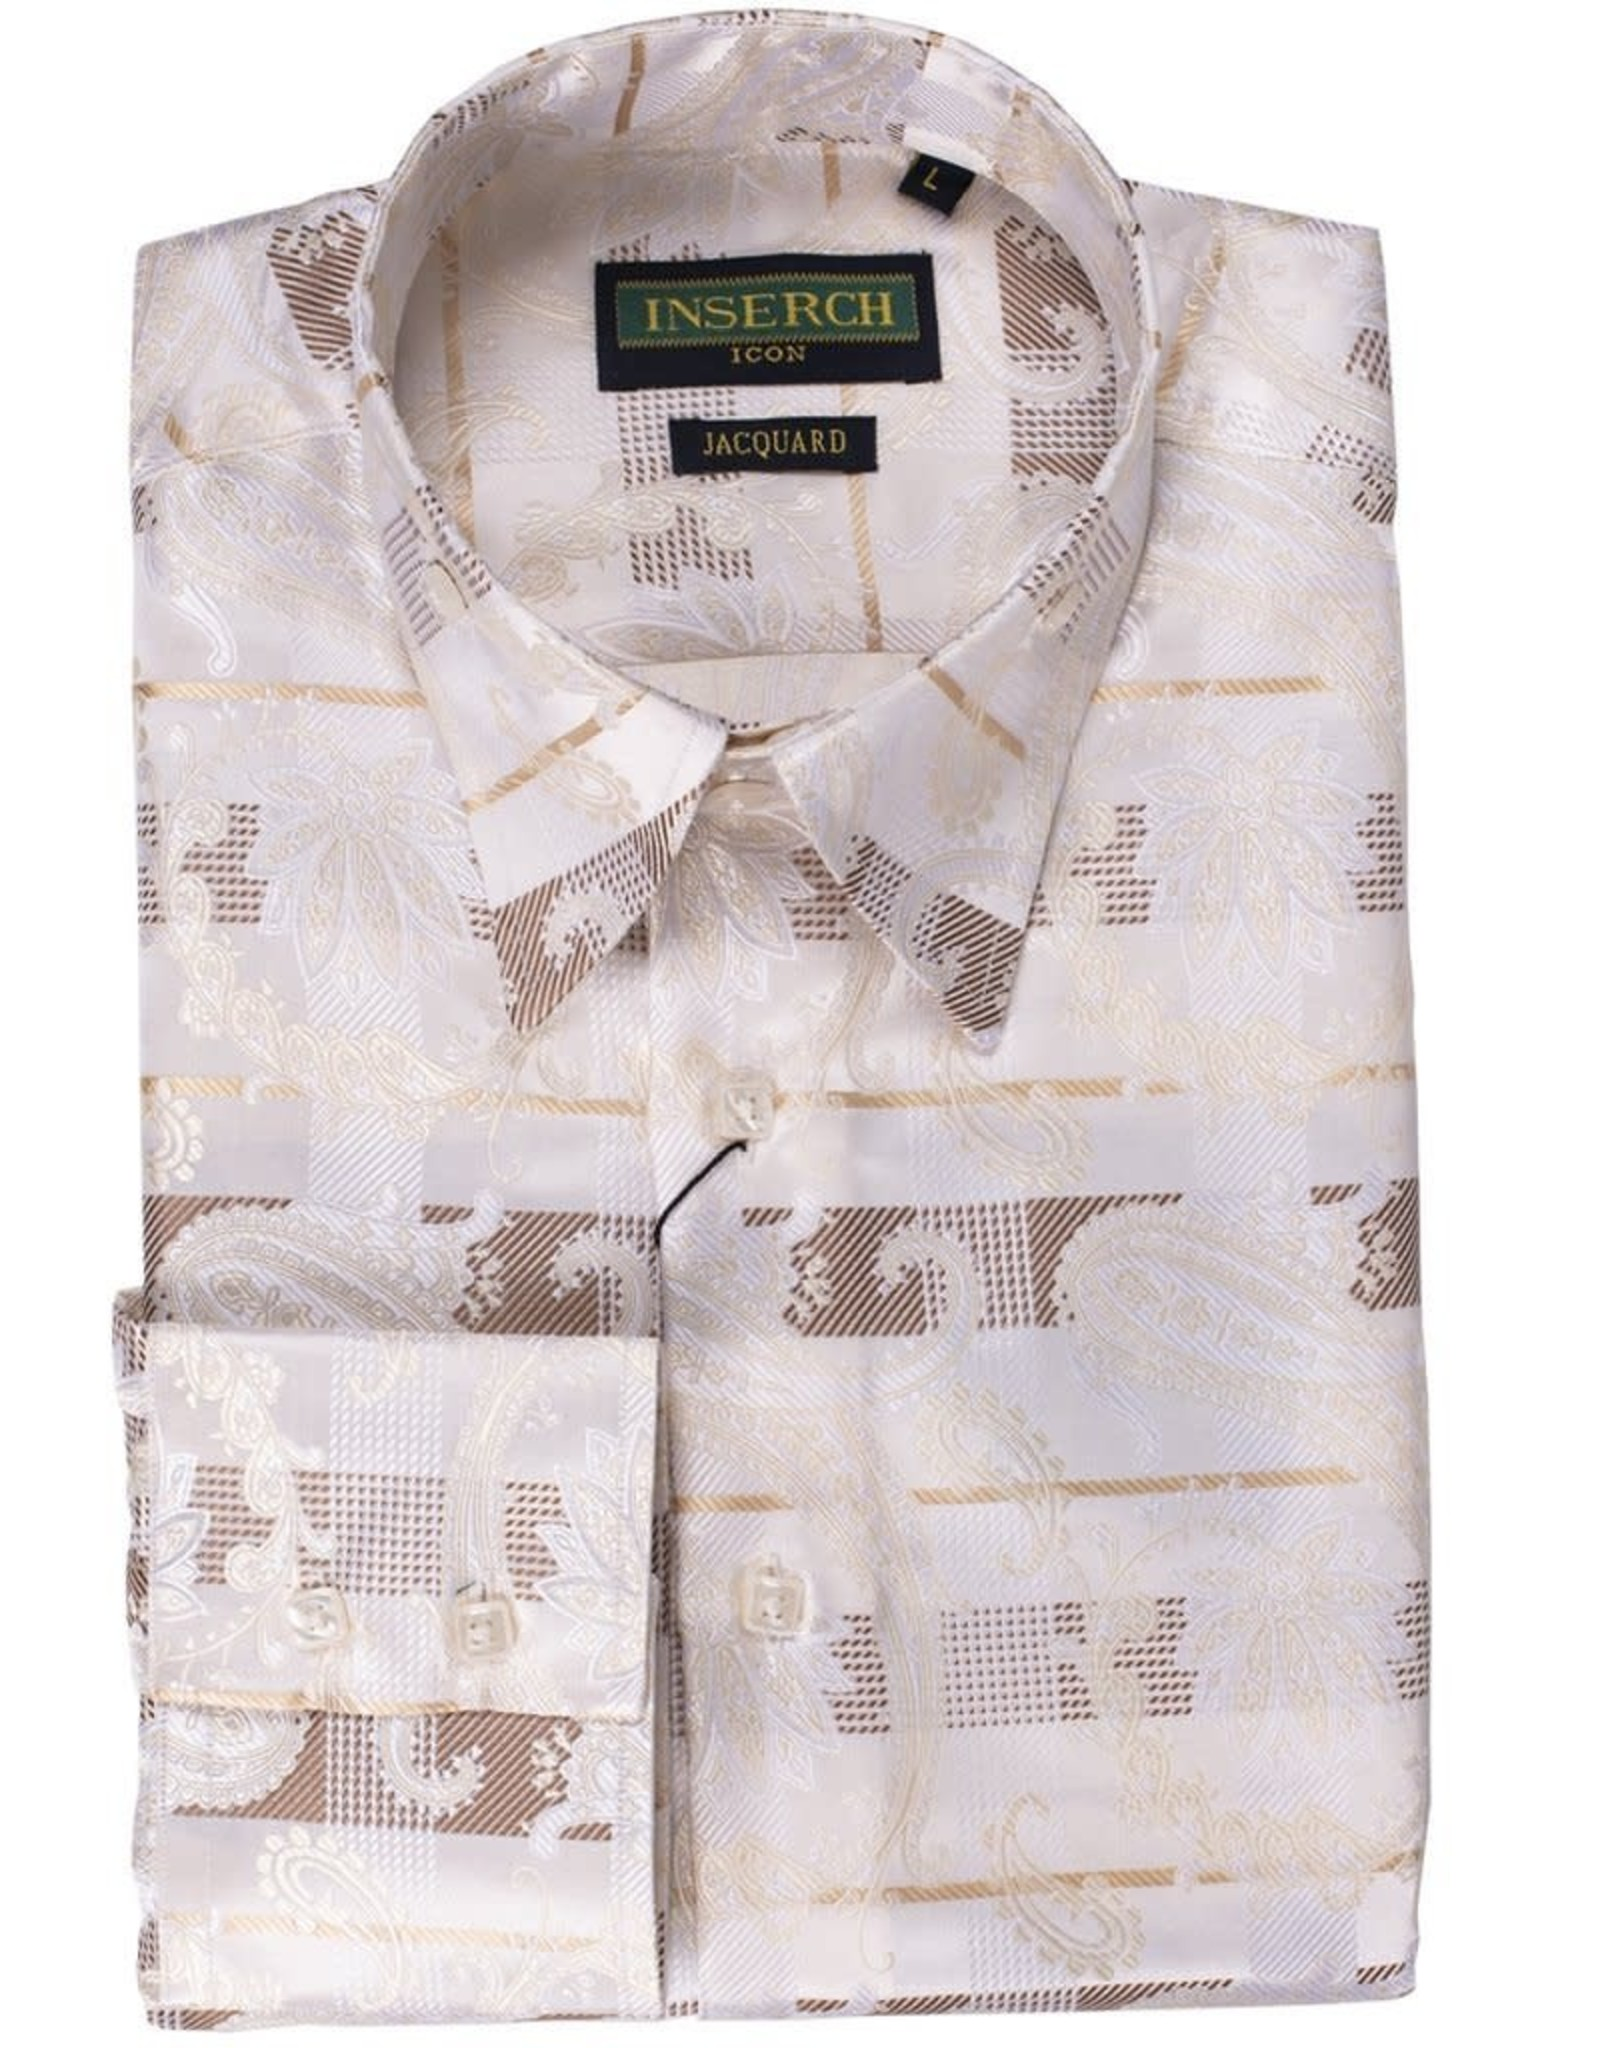 Inserch Inserch Paisley Jacquard Shirt - 2267 Off White